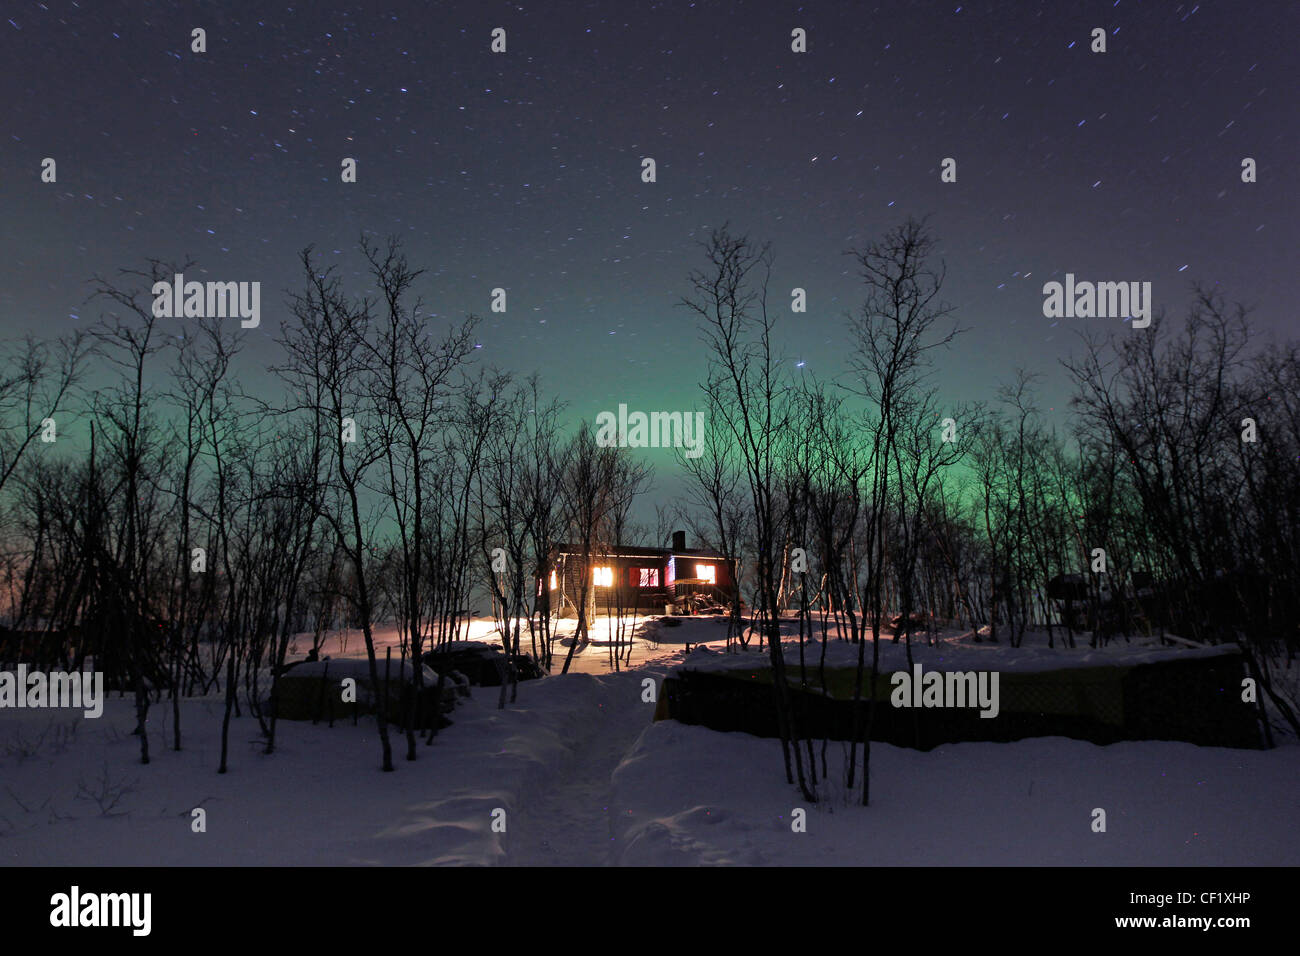 Aurora Borealis, Northern Lights, shine over a home in Abikso, northern Sweden - Stock Image